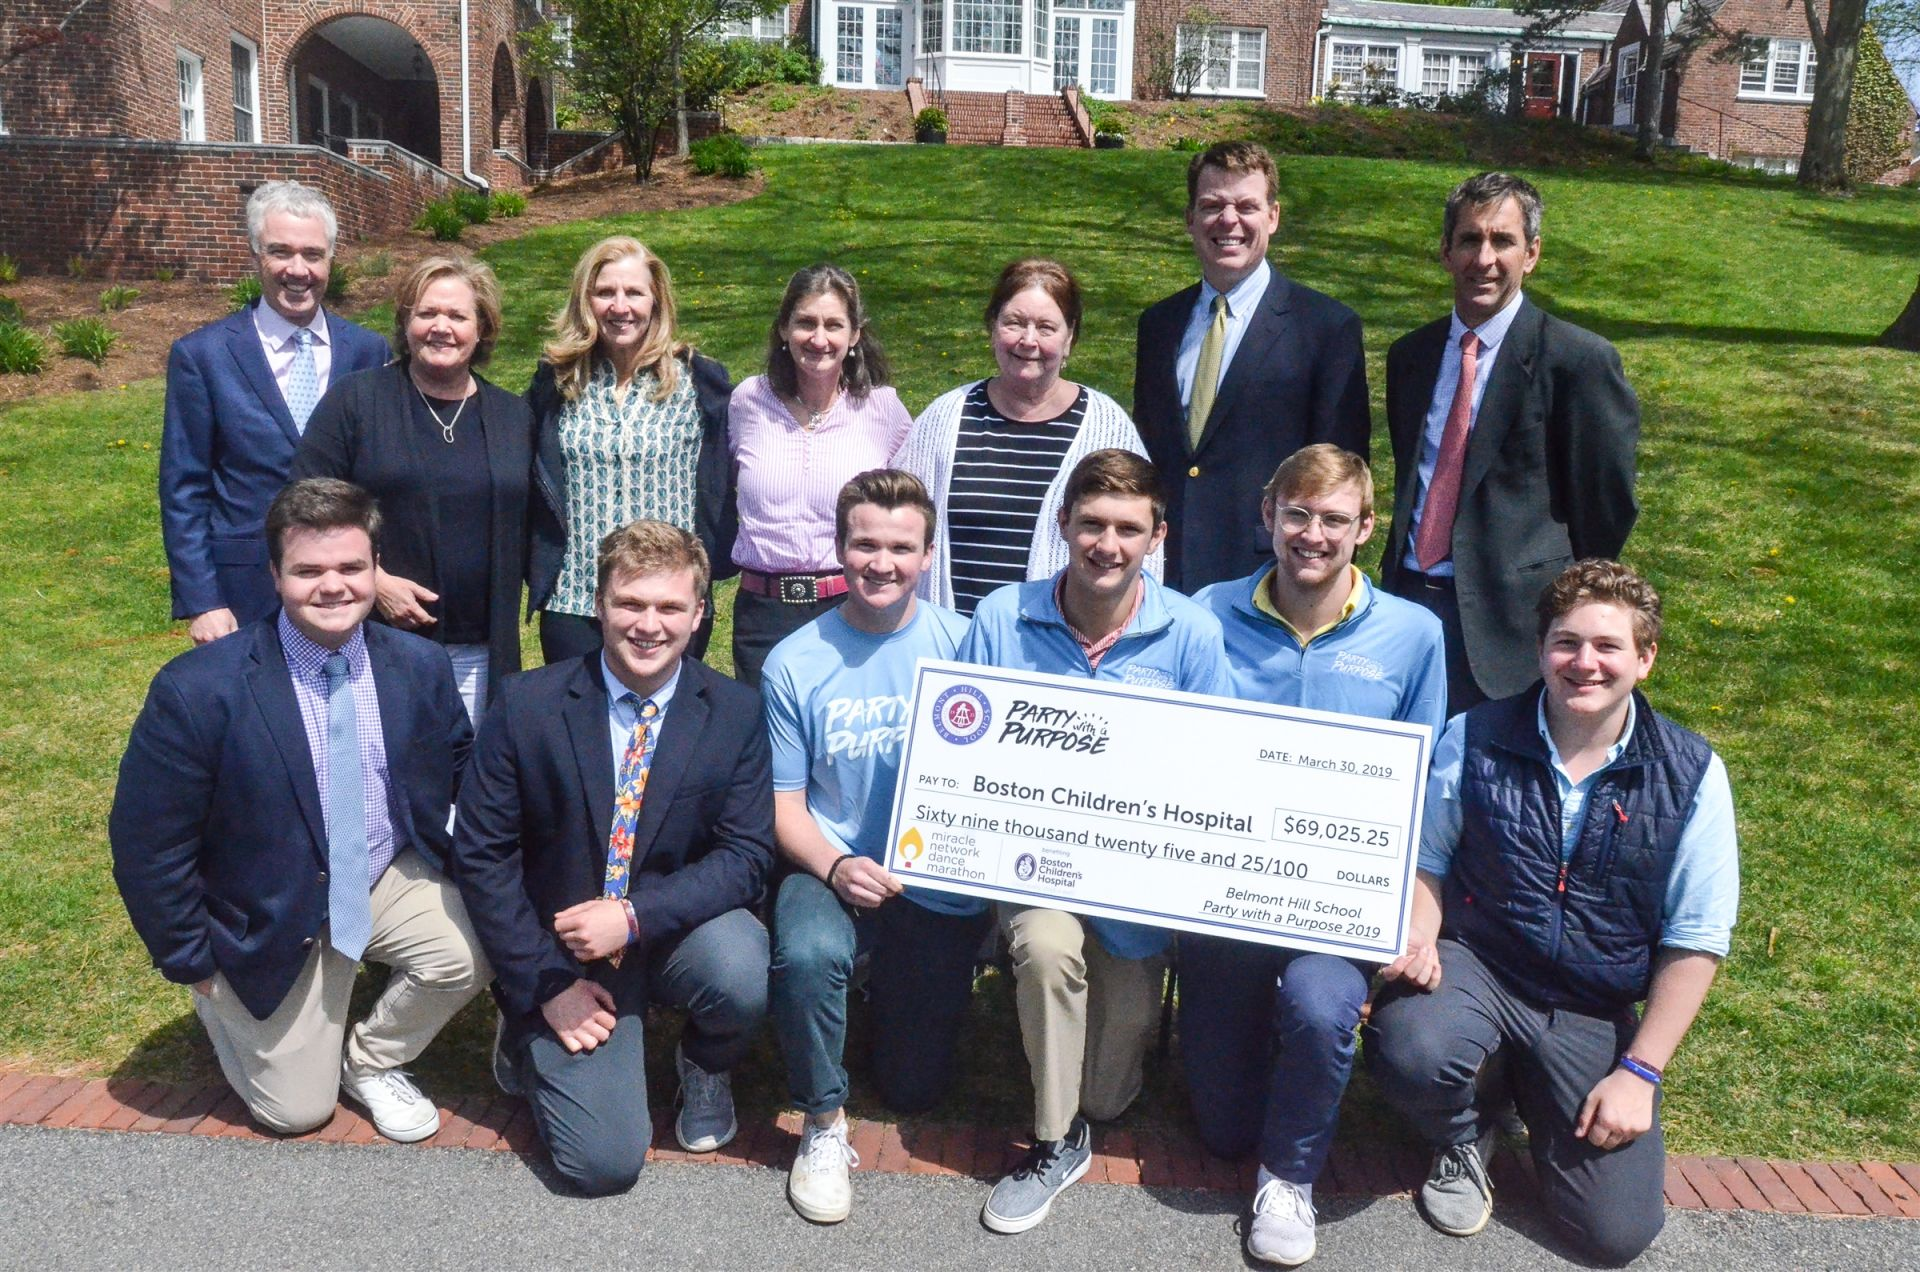 PWAP student organizers along with parent and faculty leaders proudly presented a check for $69k to Boston Children's Hospital in May.